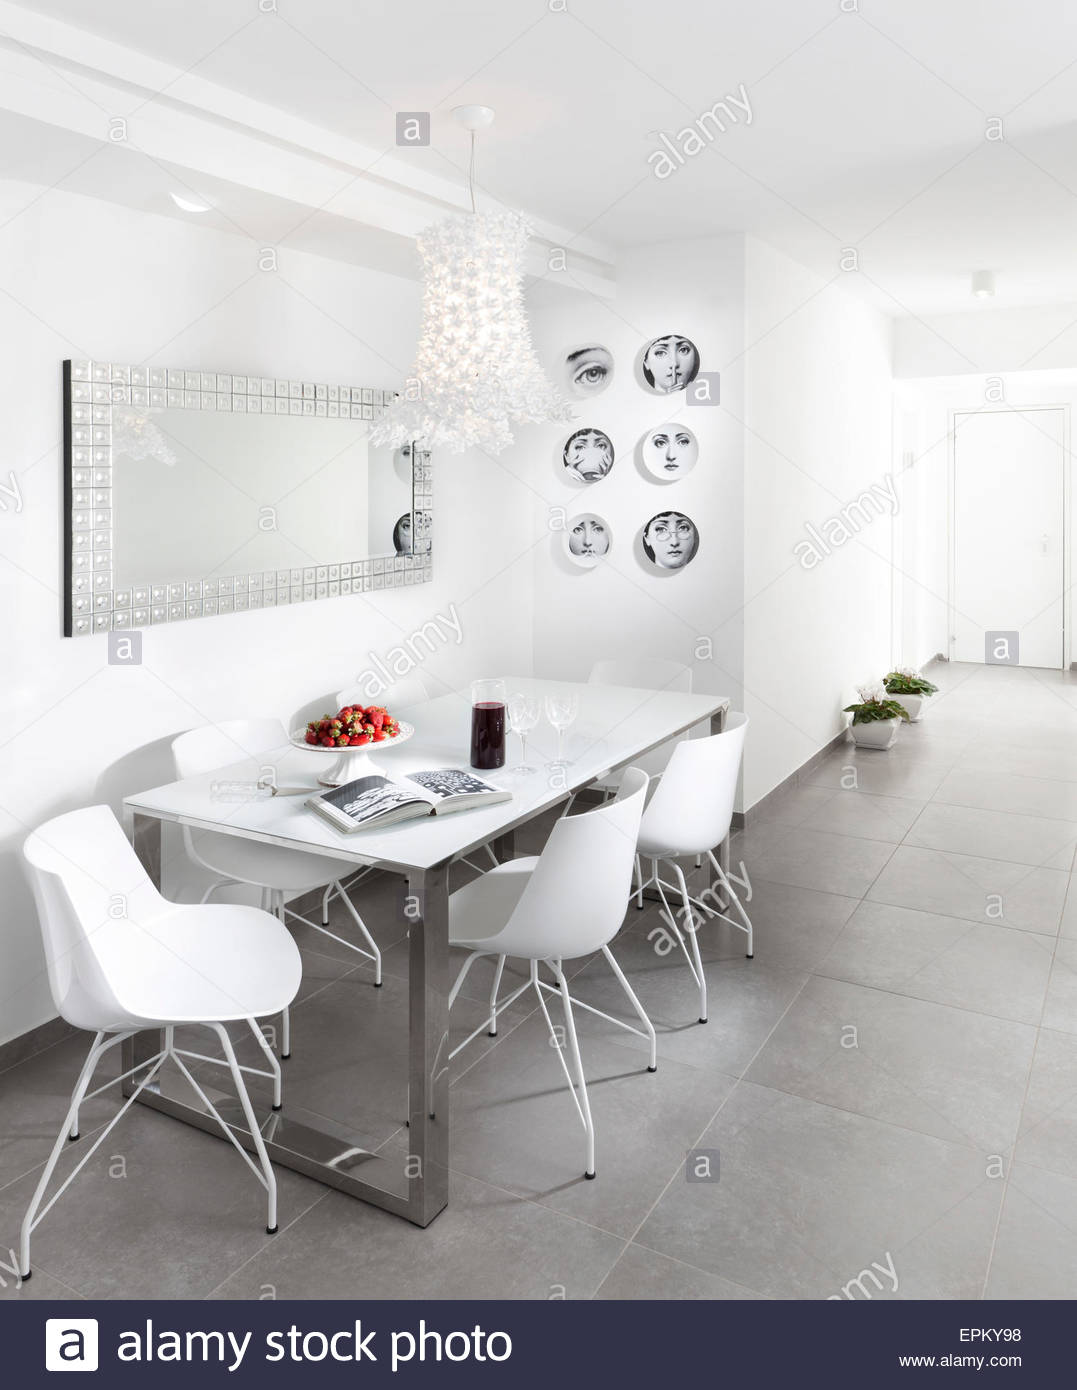 Table And Chairs In White Room Modern Apartment Givat Shmuel Israel